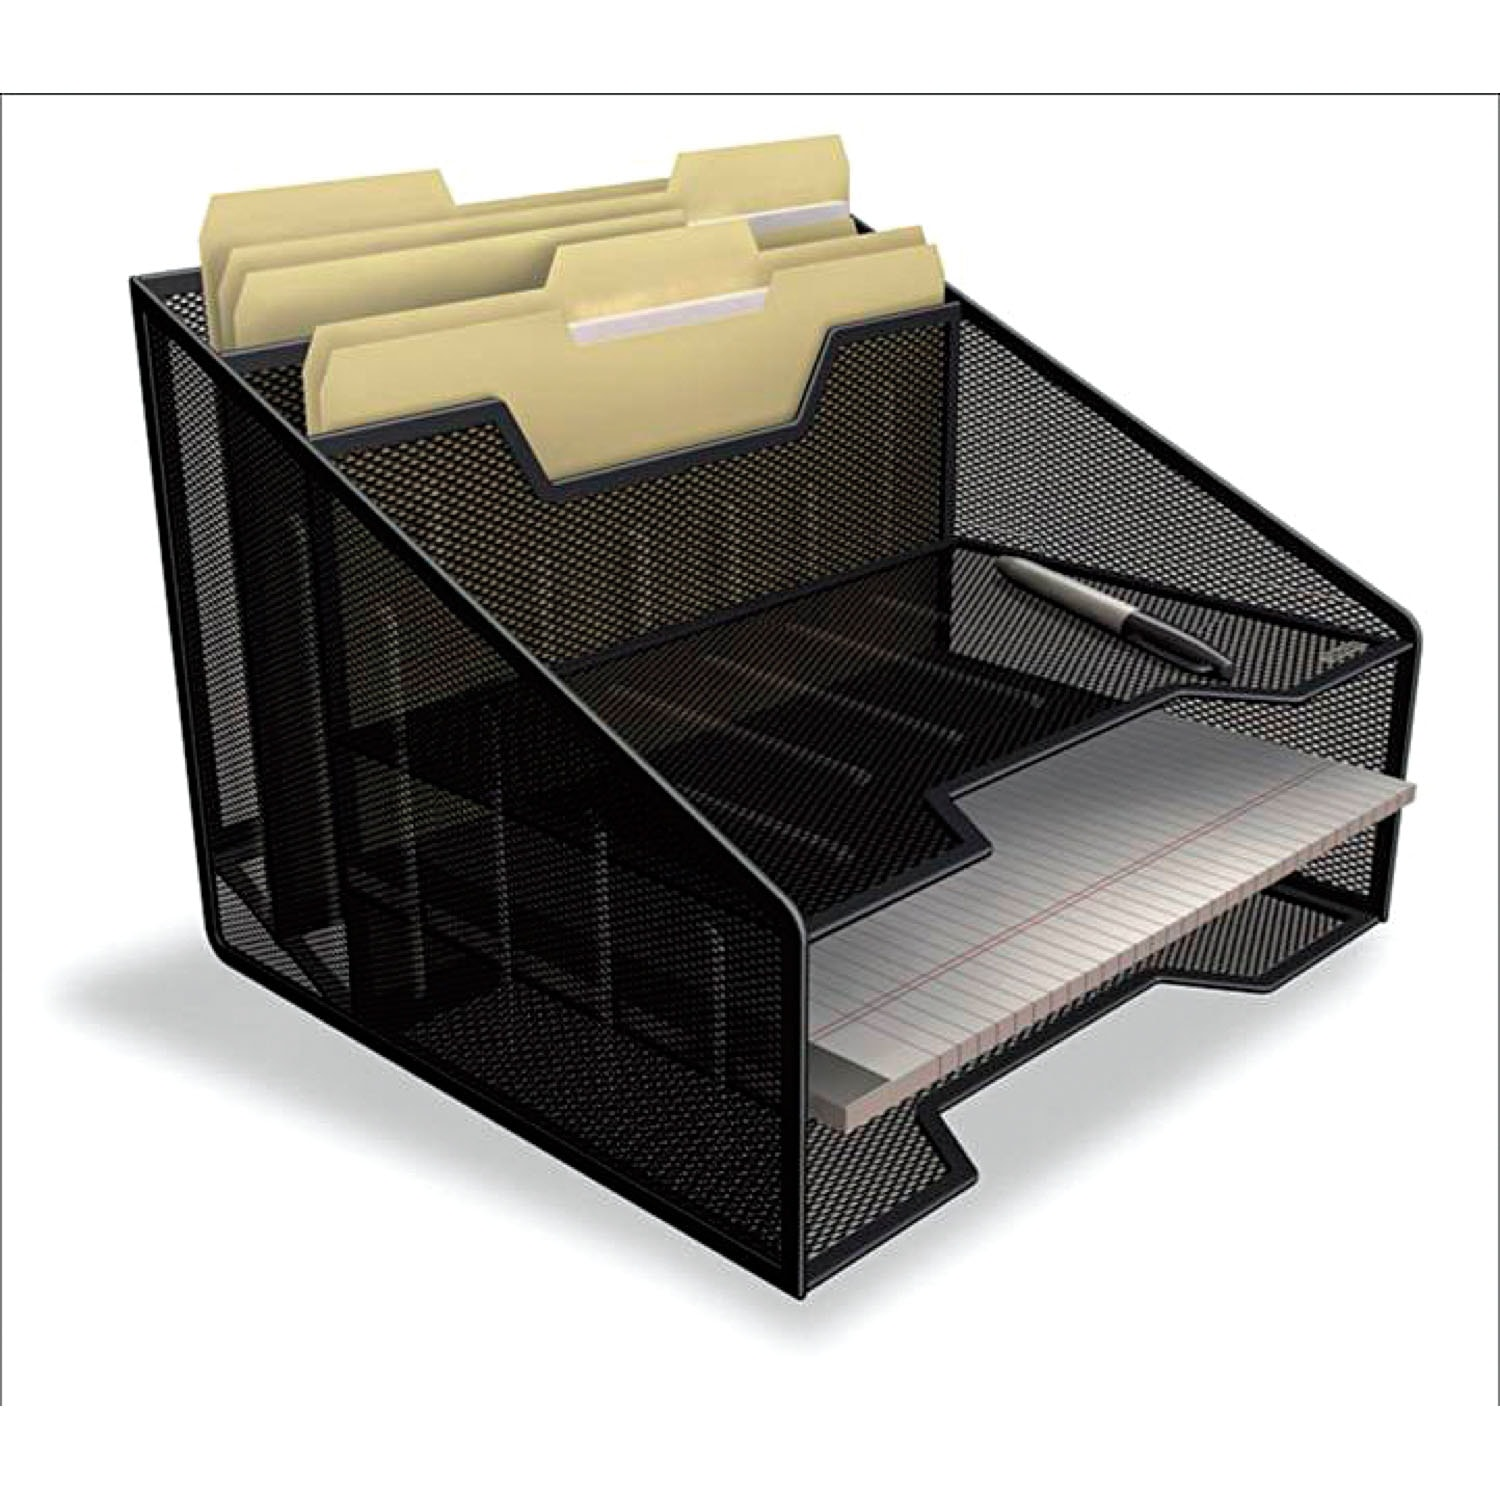 Rolodex Mesh Tray Sorter Combo Grand Toy